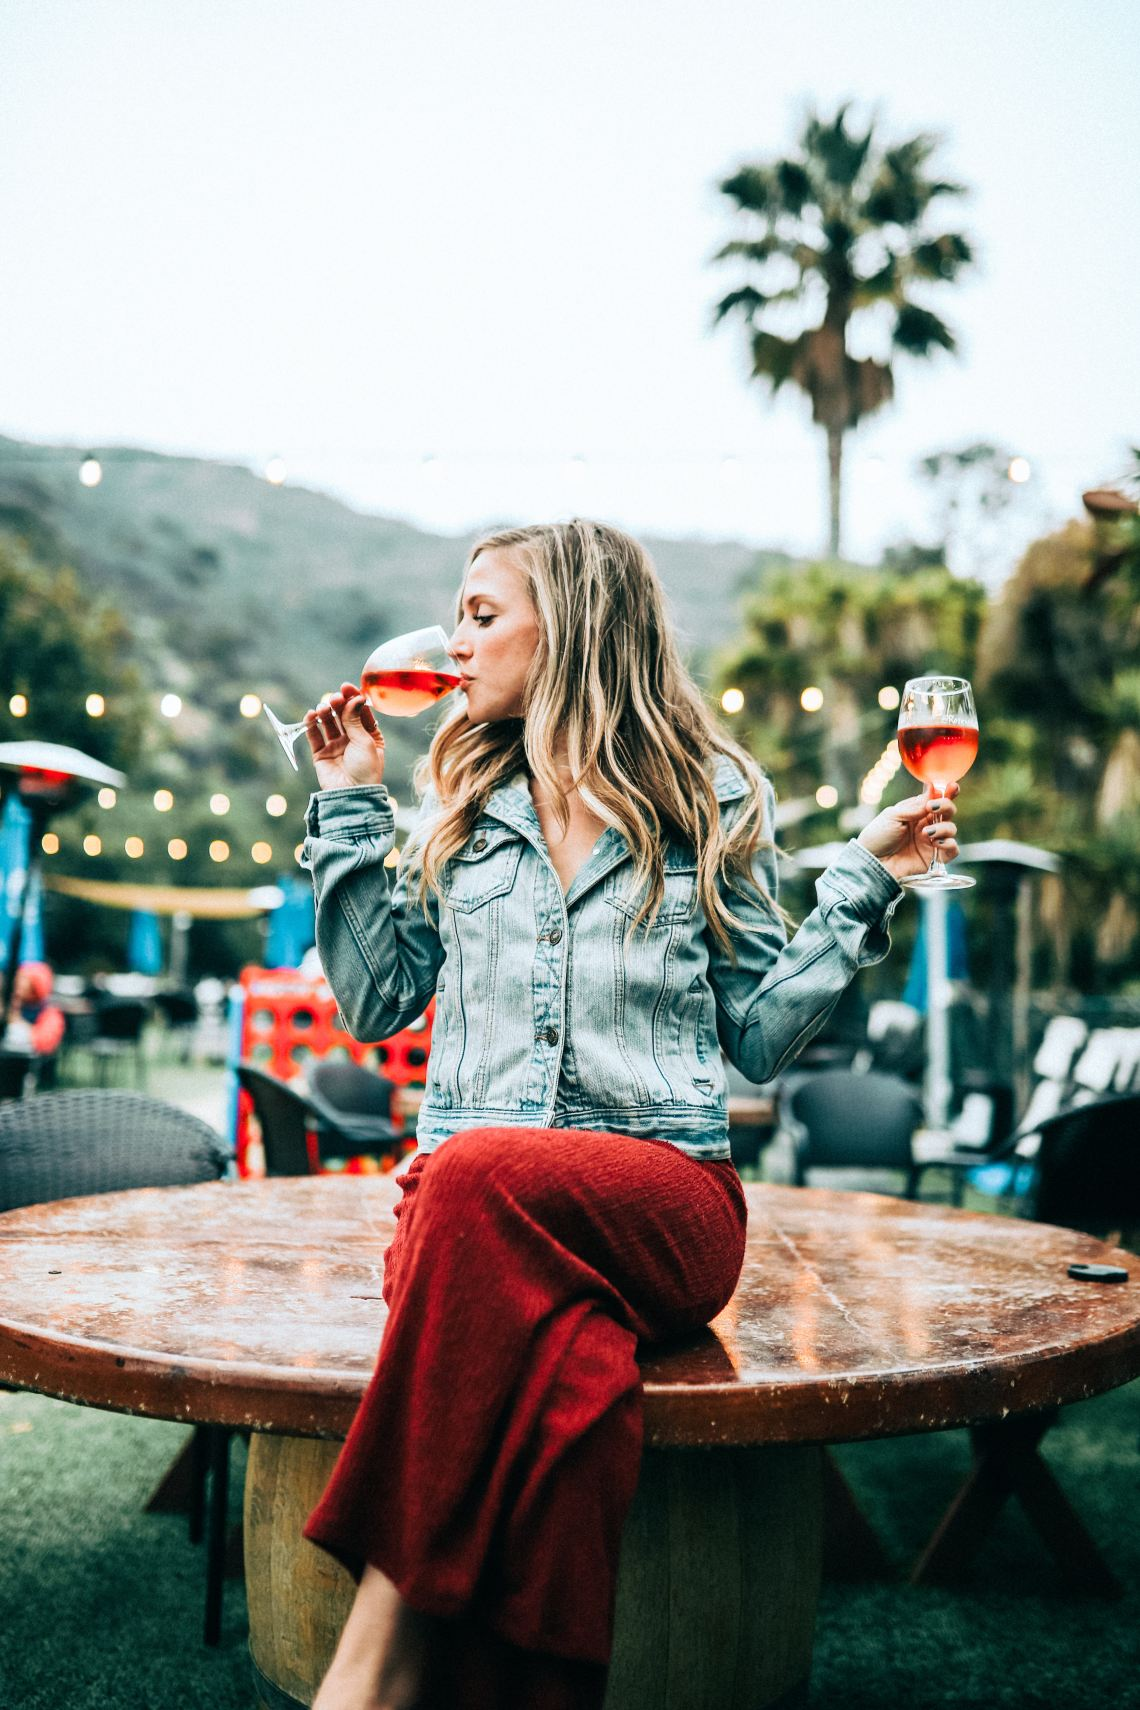 A picture of a woman holding two glasses of wine